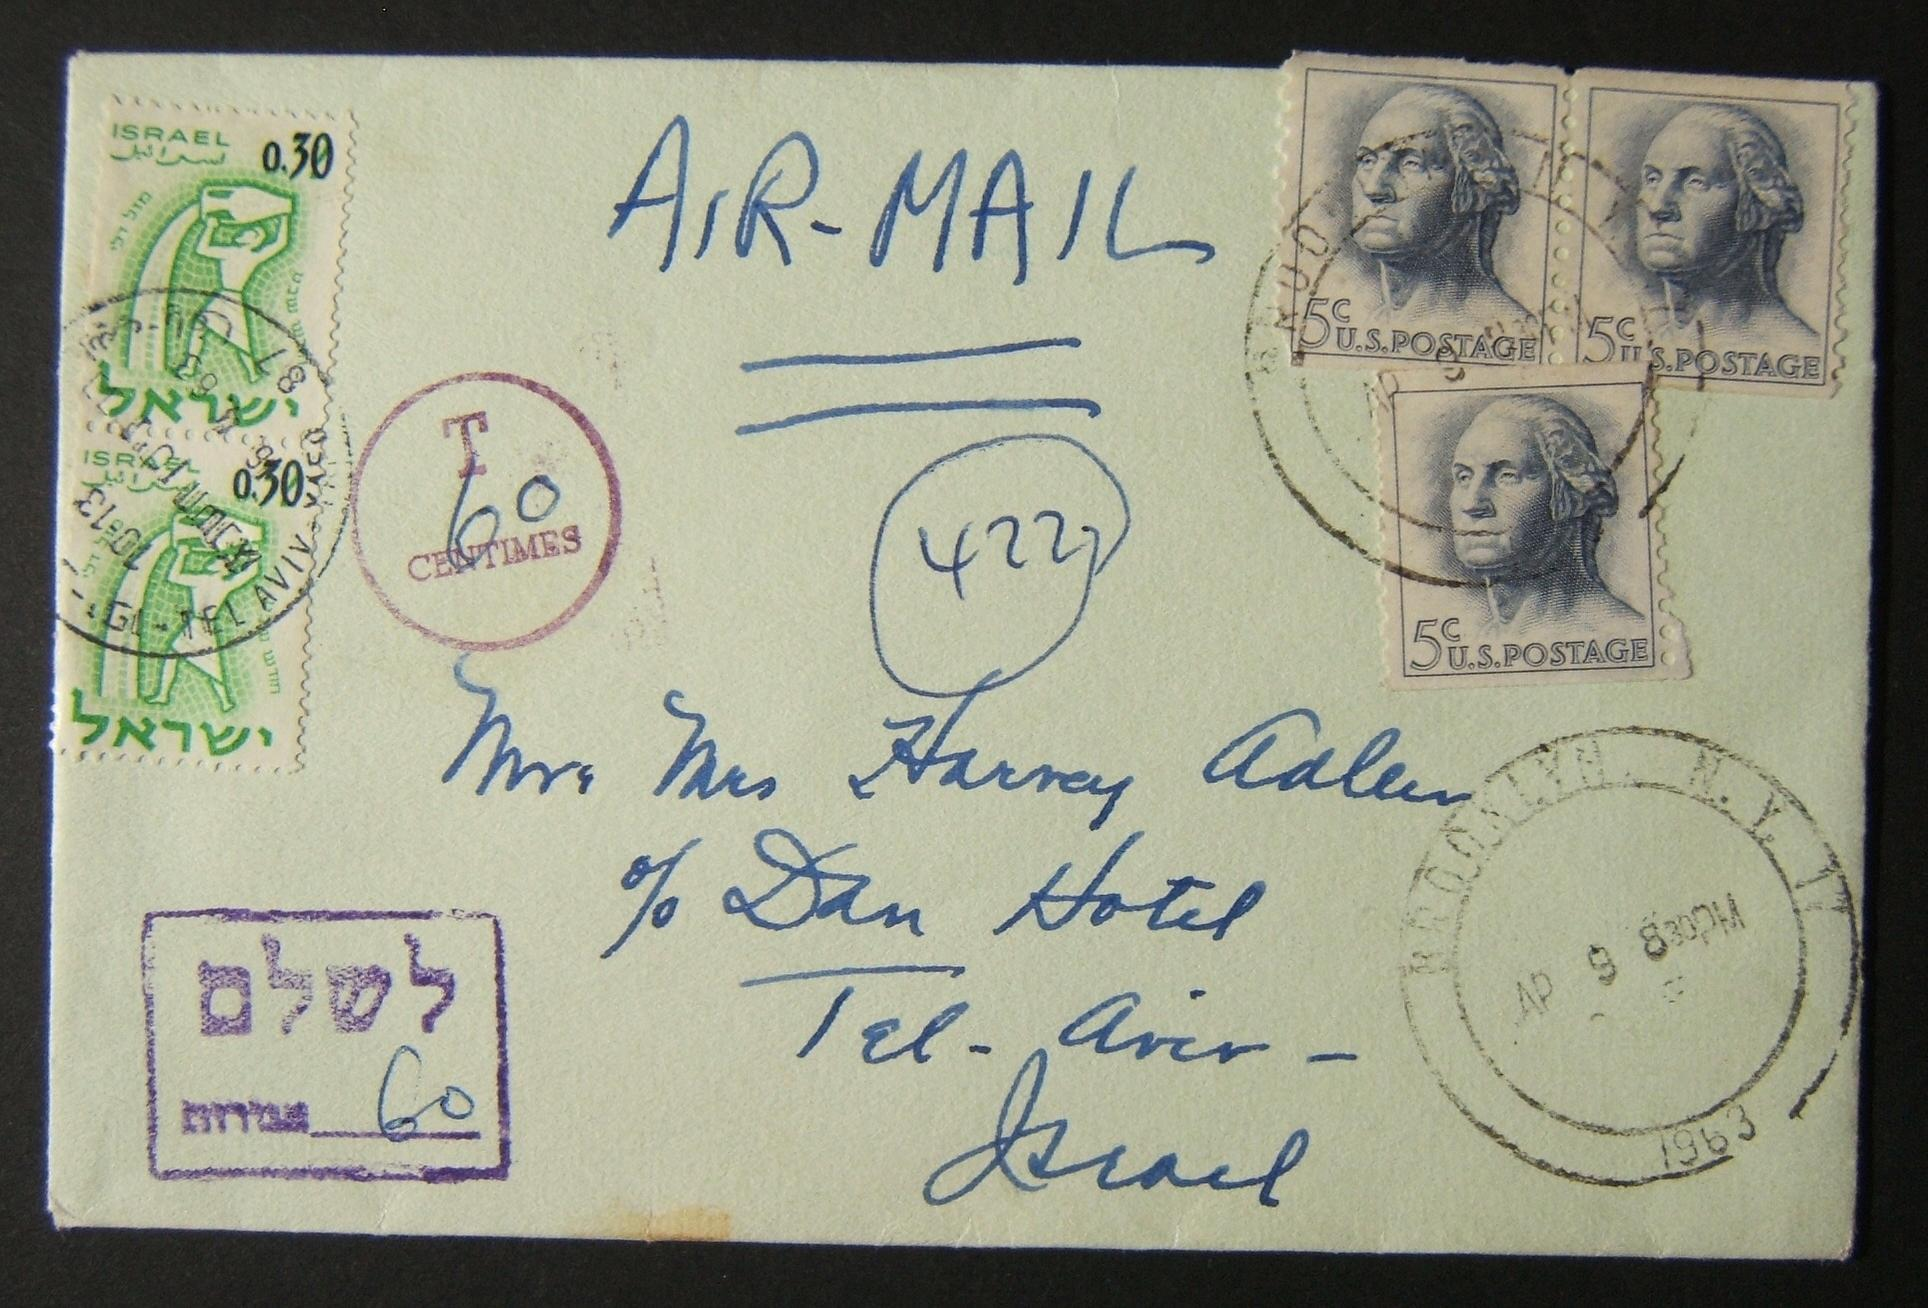 1963 incoming US taxed mail: AP 9 1963 airmail cover ex BROOKLYN to TLV underfranked at $0.15 and taxed 0.60L in Israel, paid 16-4-63 using vert pair 0.30L 1962 ovpt'd Zodiac Ba238